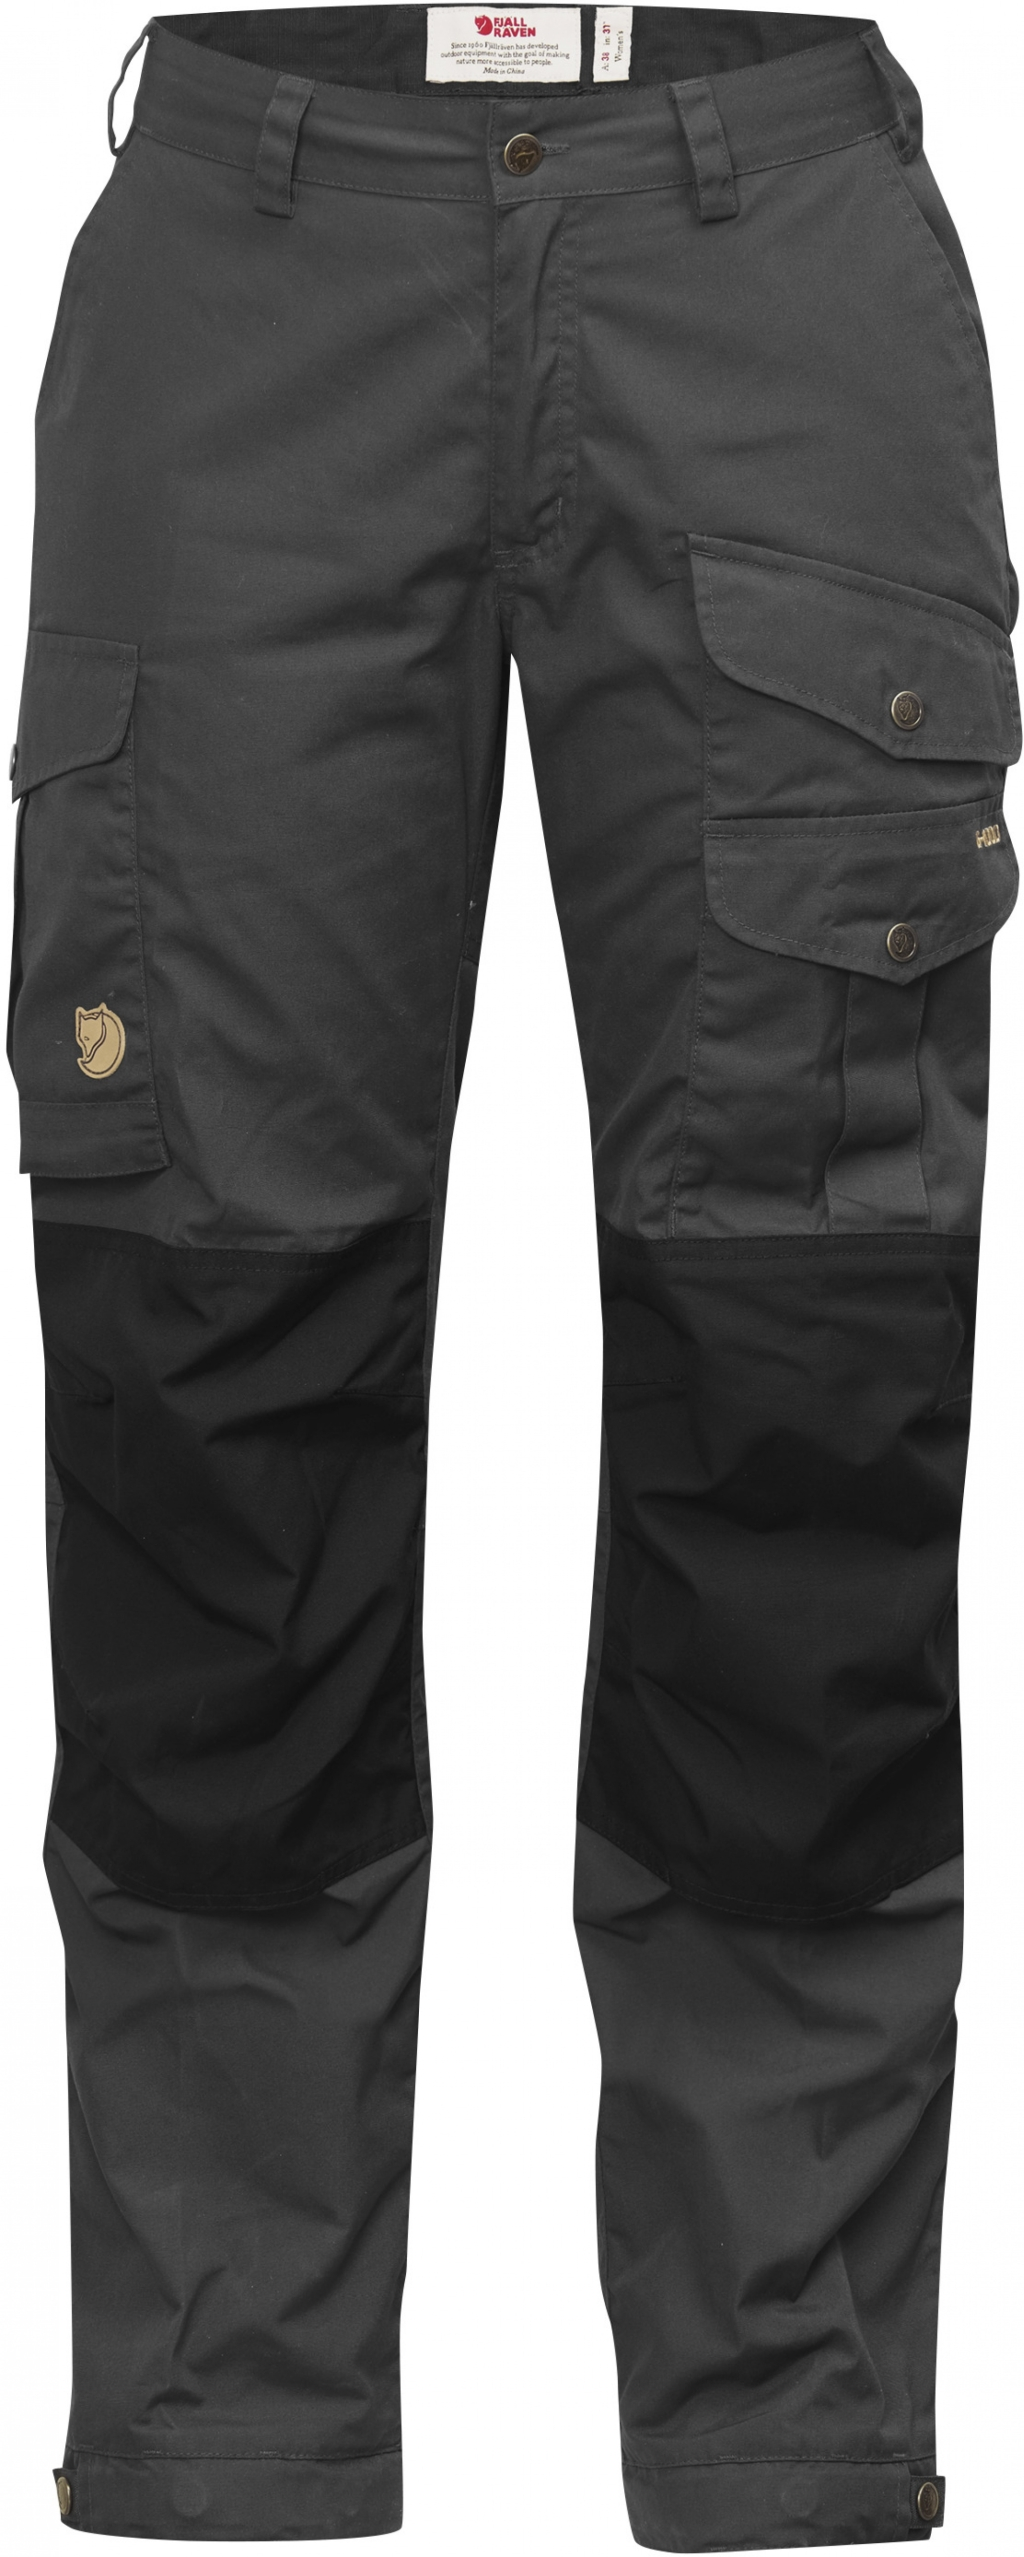 FjallRaven Vidda Pro Trousers Curved W Dark Grey-30